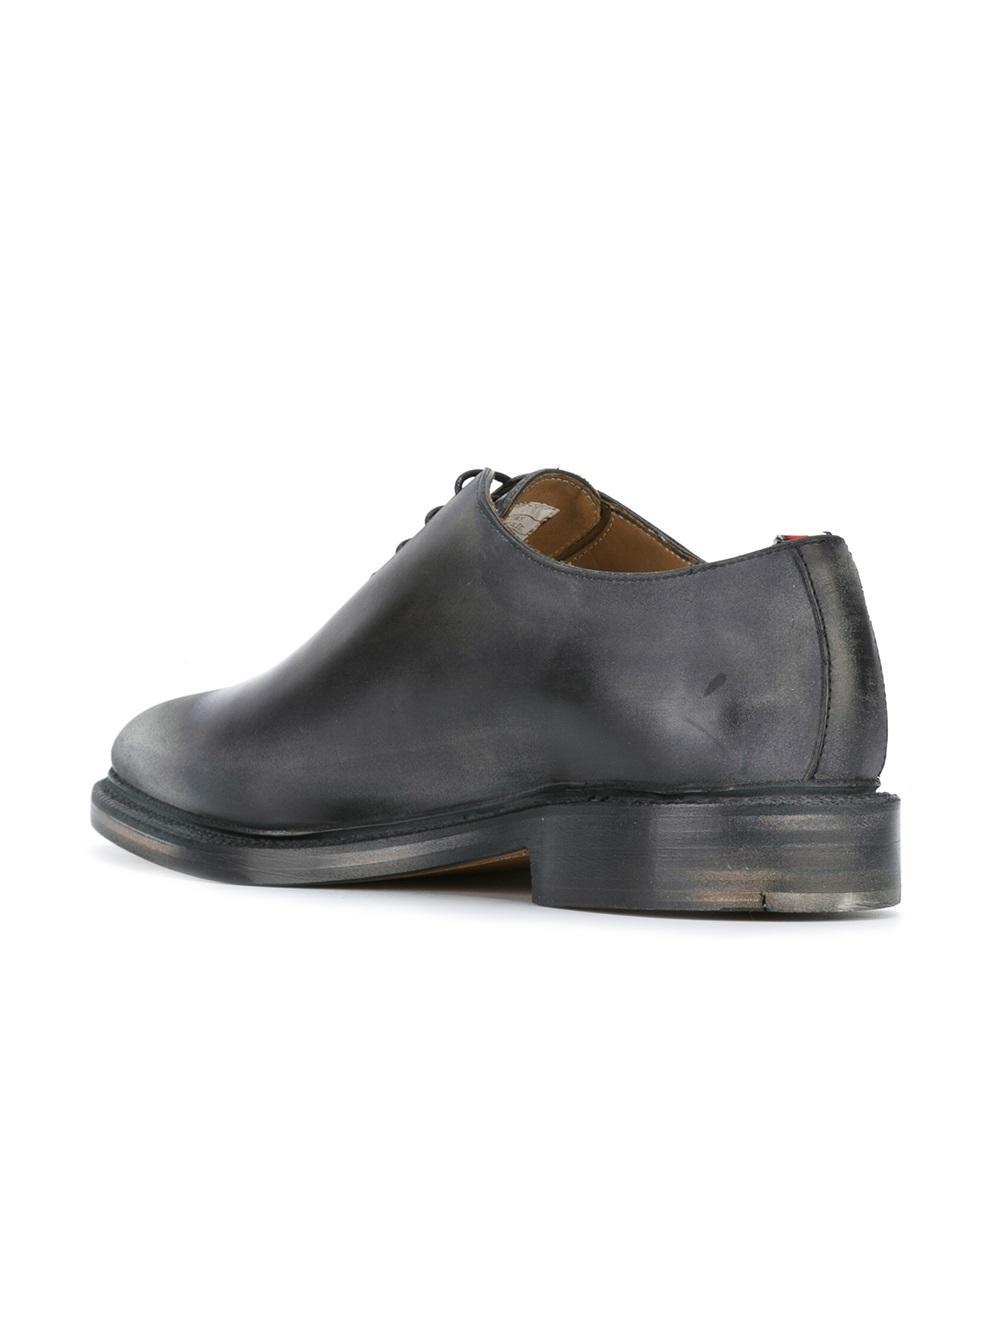 Thom Browne Leather Classic Derby Shoes in Black for Men